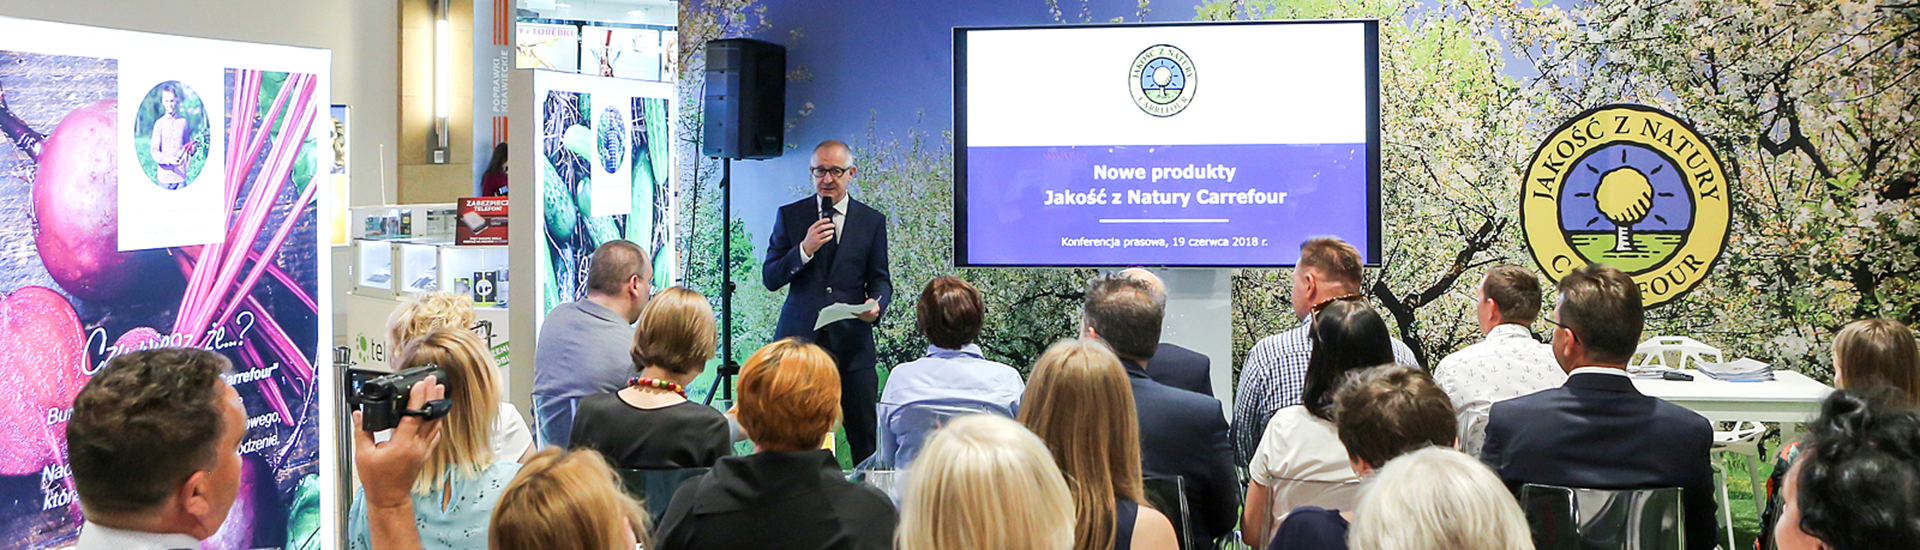 "Carrefour launches 4 new products ""Jakość z Natury Carrefour"""